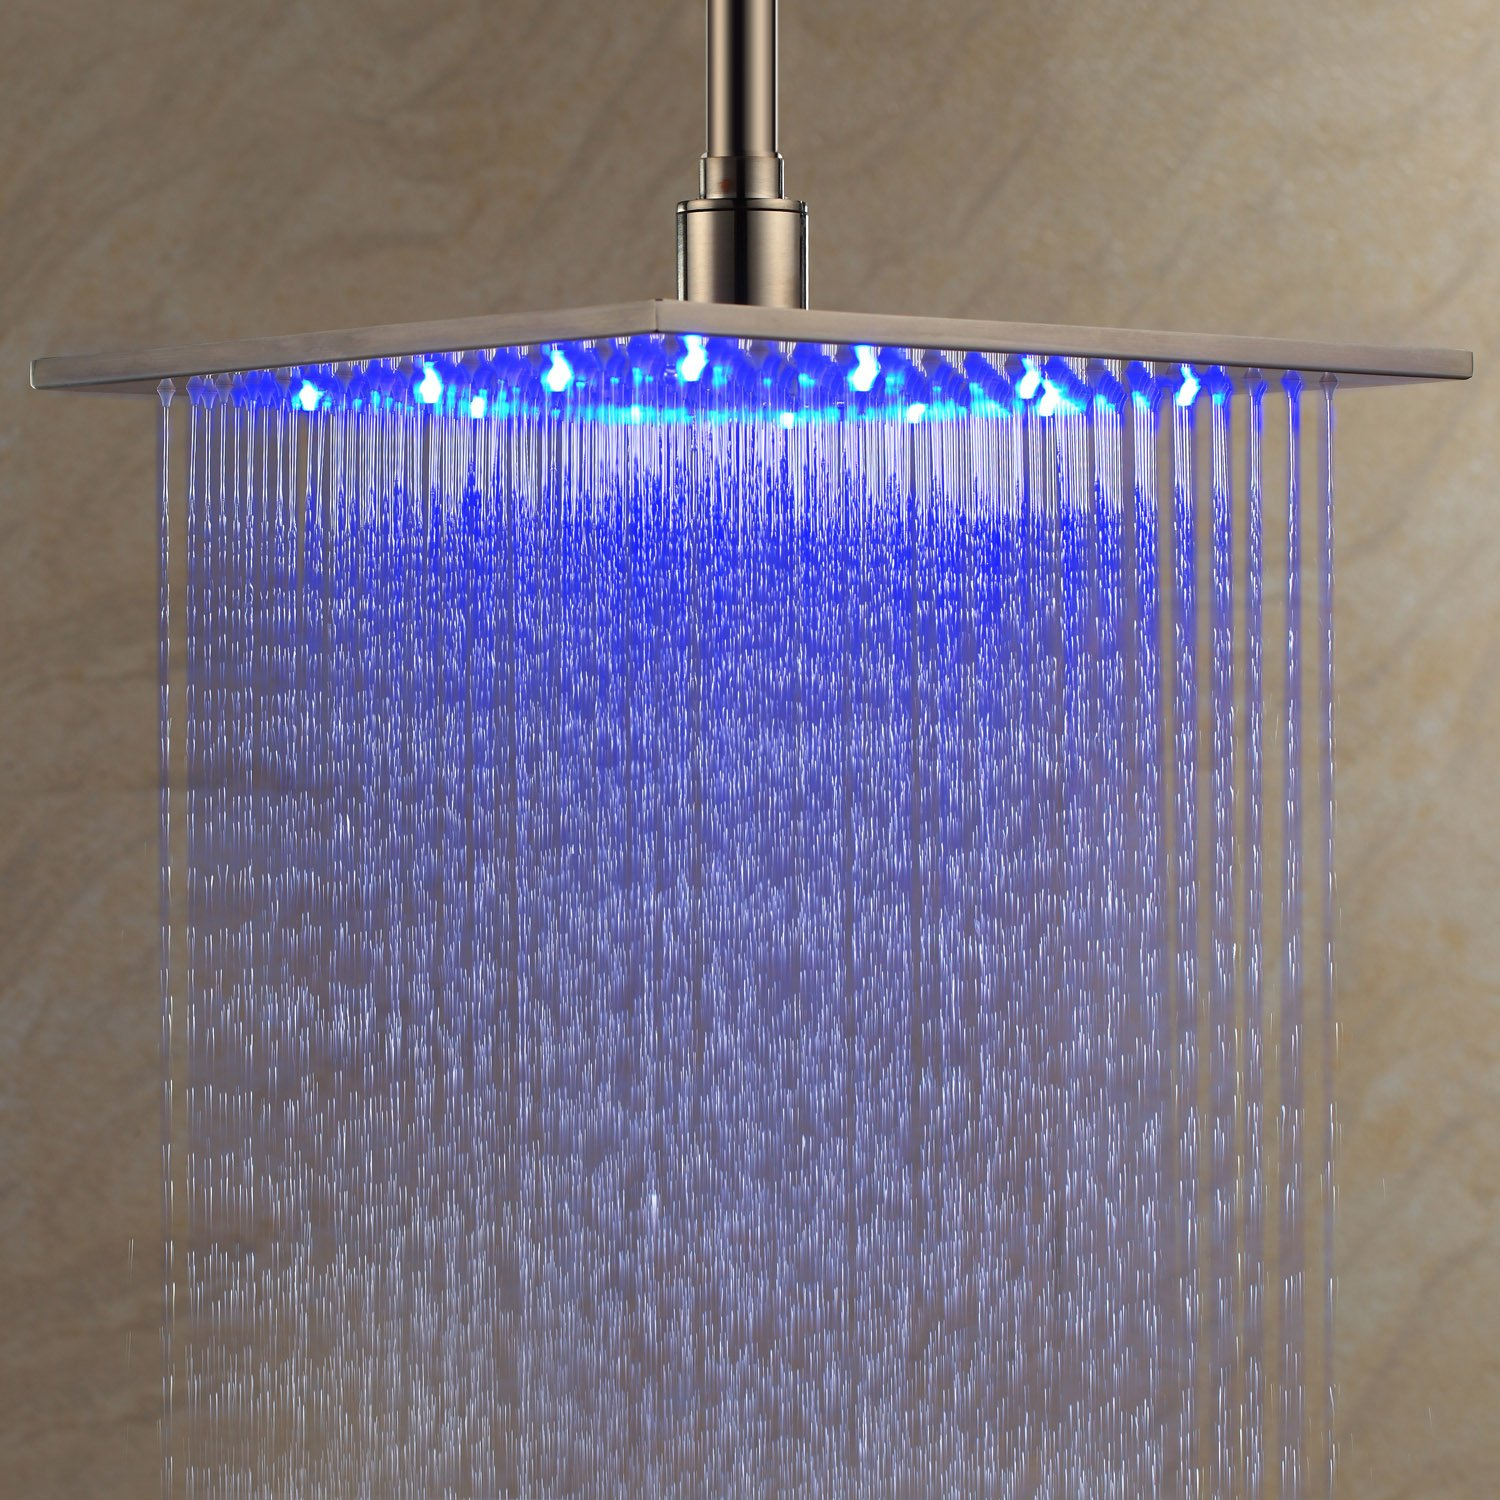 light therapy shower head | Shut Up And Take My Money